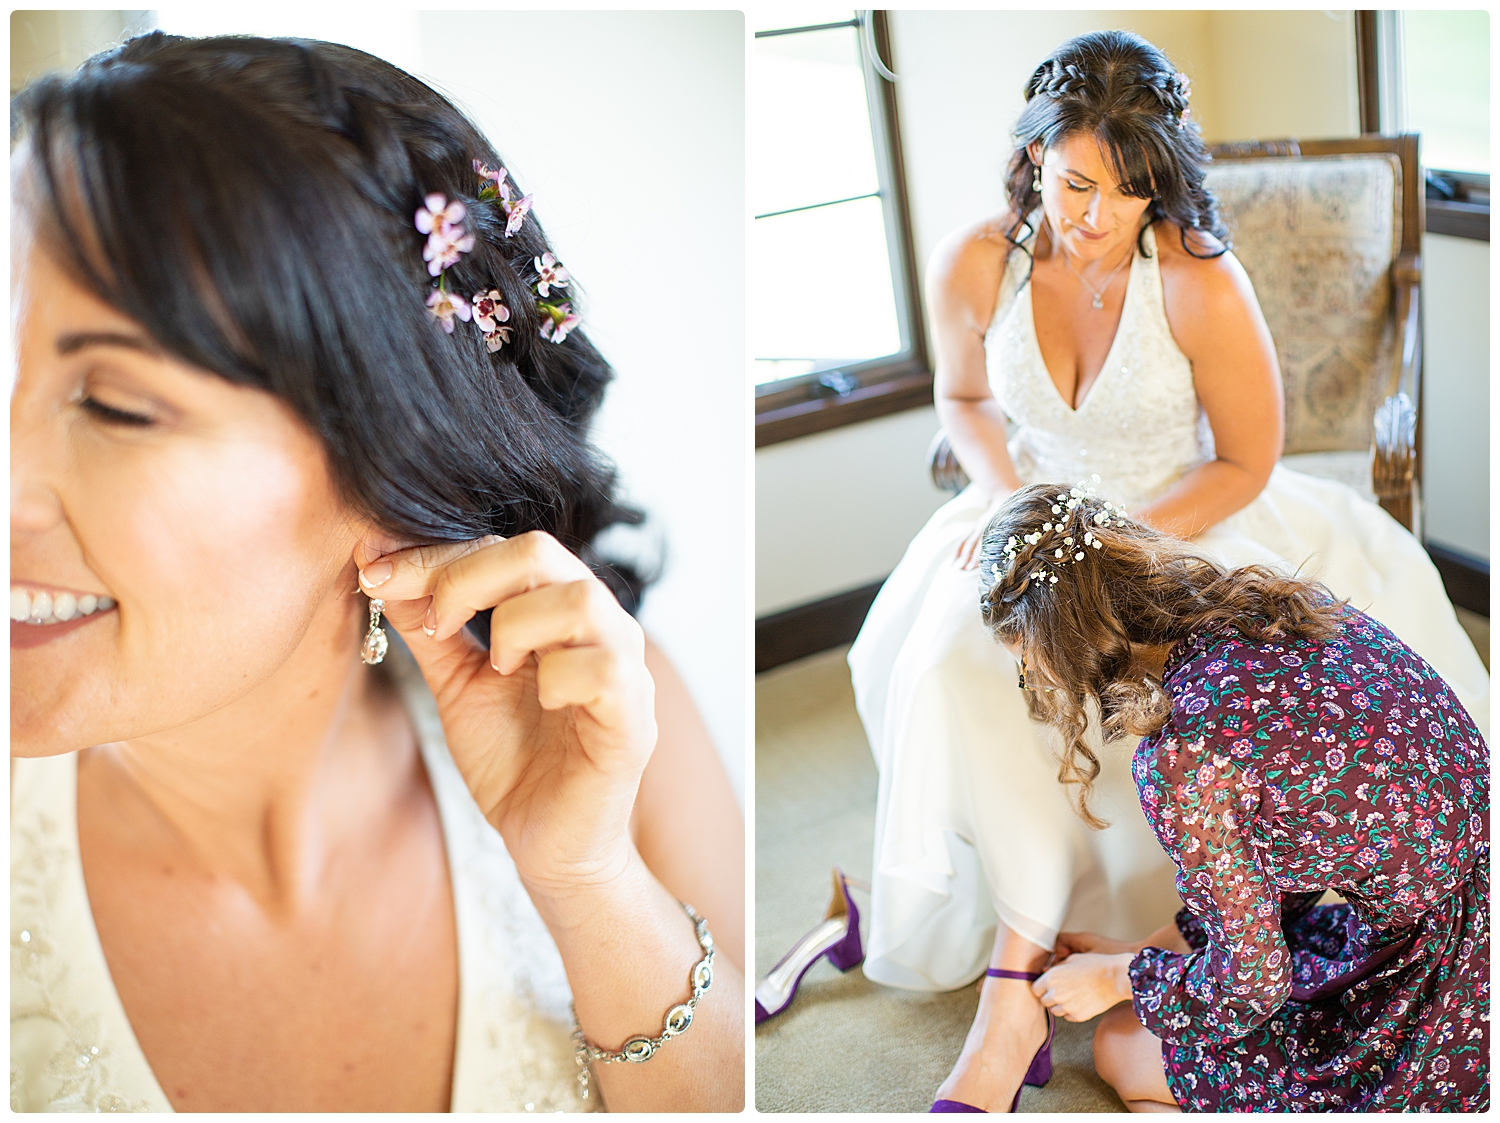 New Years Eve intimate wedding_Renoda Campbell Photography_LGBT wedding_0047.jpg